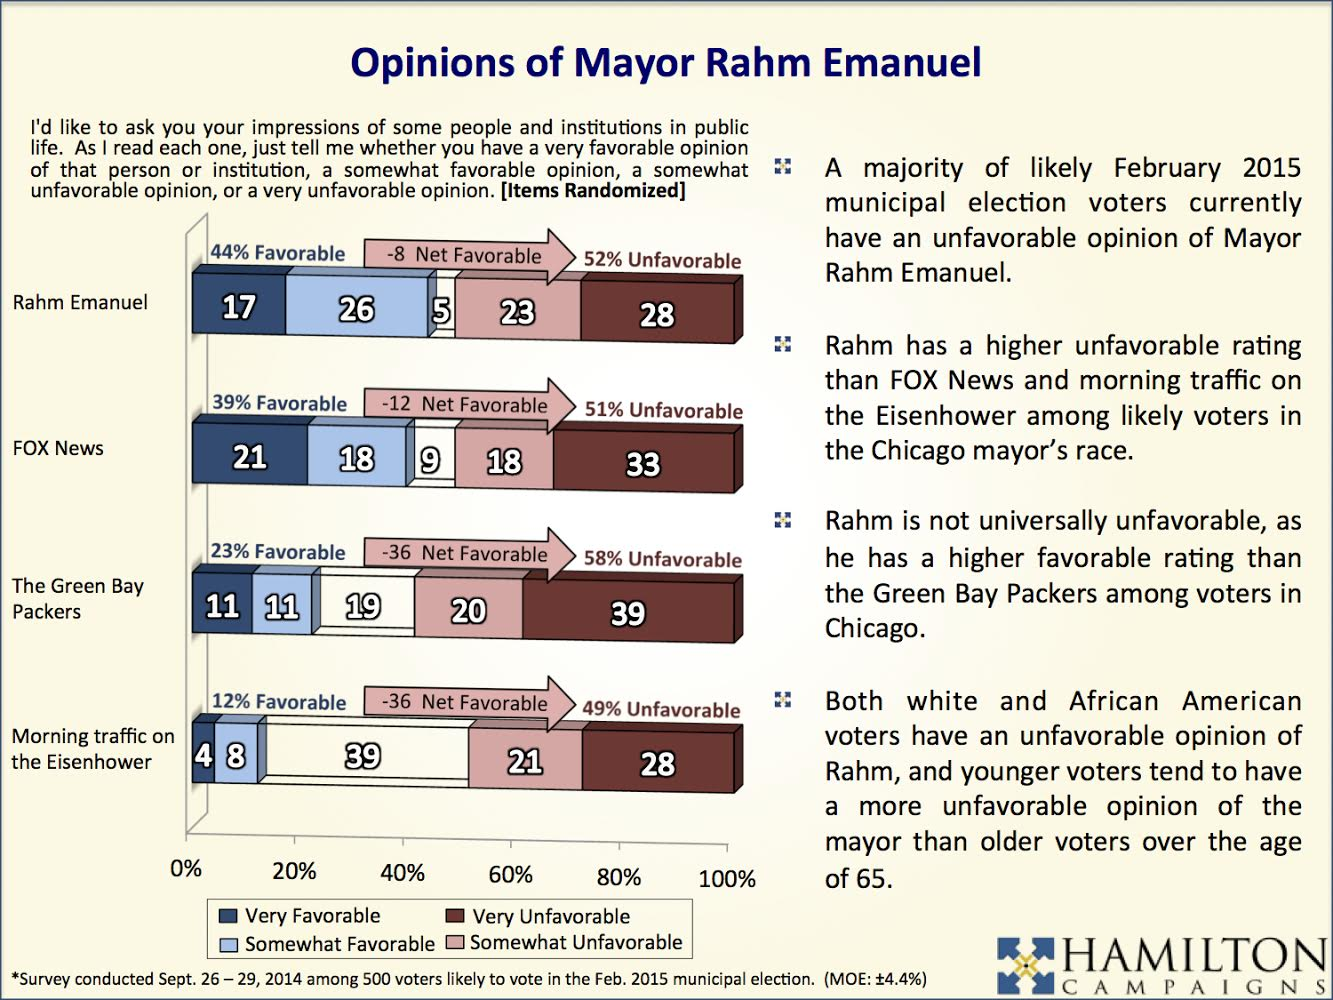 Poll: Emanuel's Unfavorables Rival Green Bay, Traffic